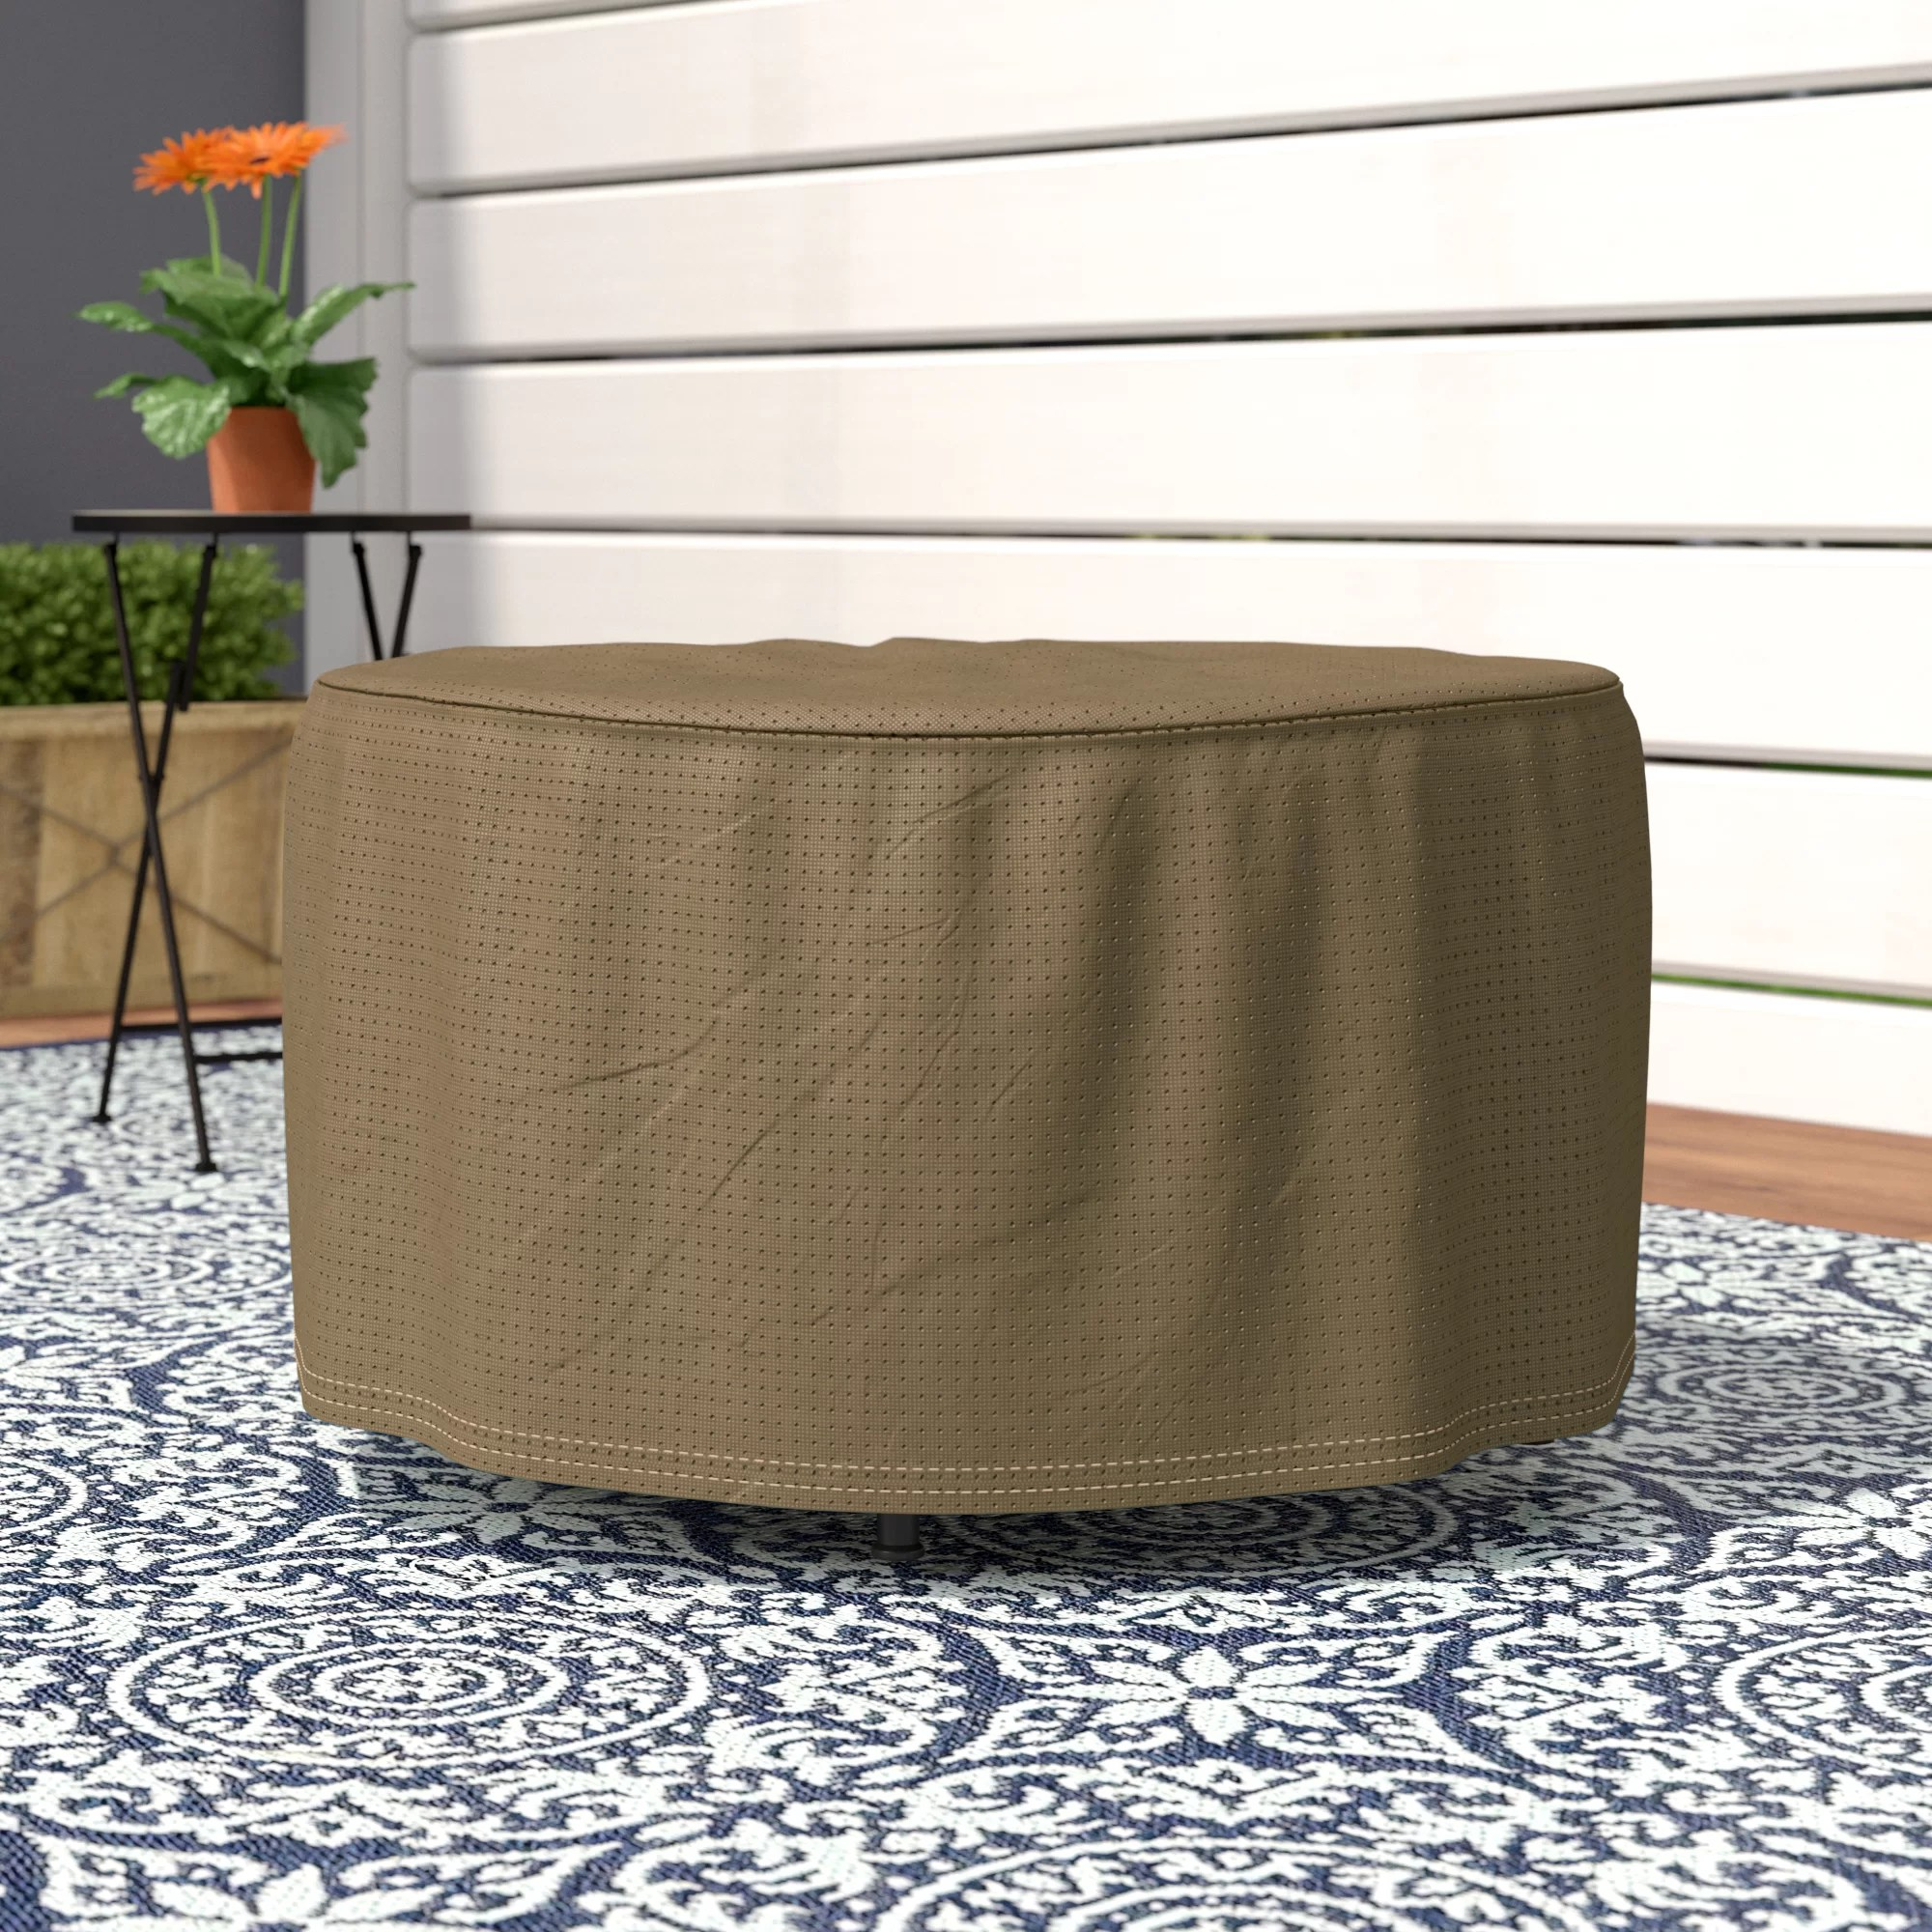 wayfair basics water resistant patio table cover